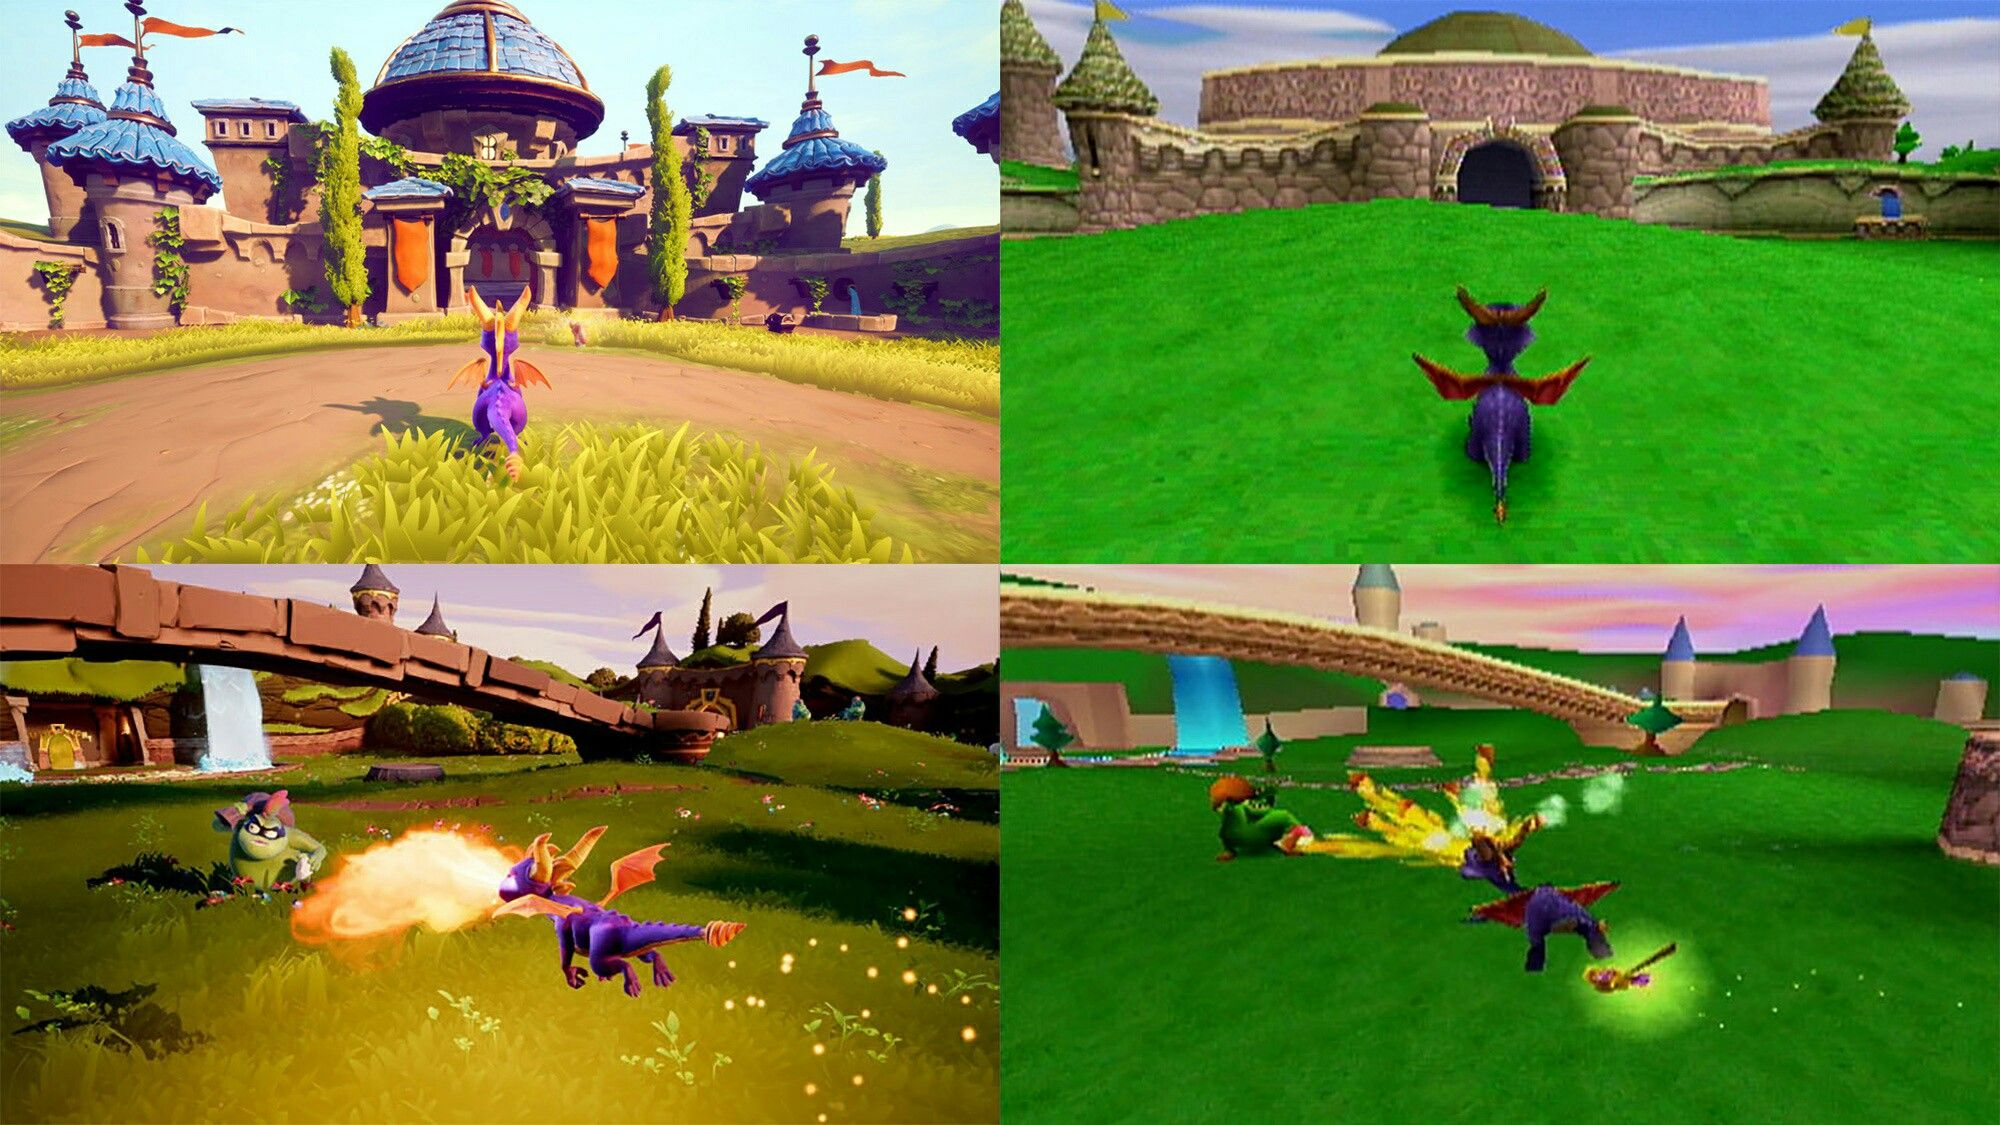 Spyro reignited trilogy ps4 vs ps1 comparison Trilogy